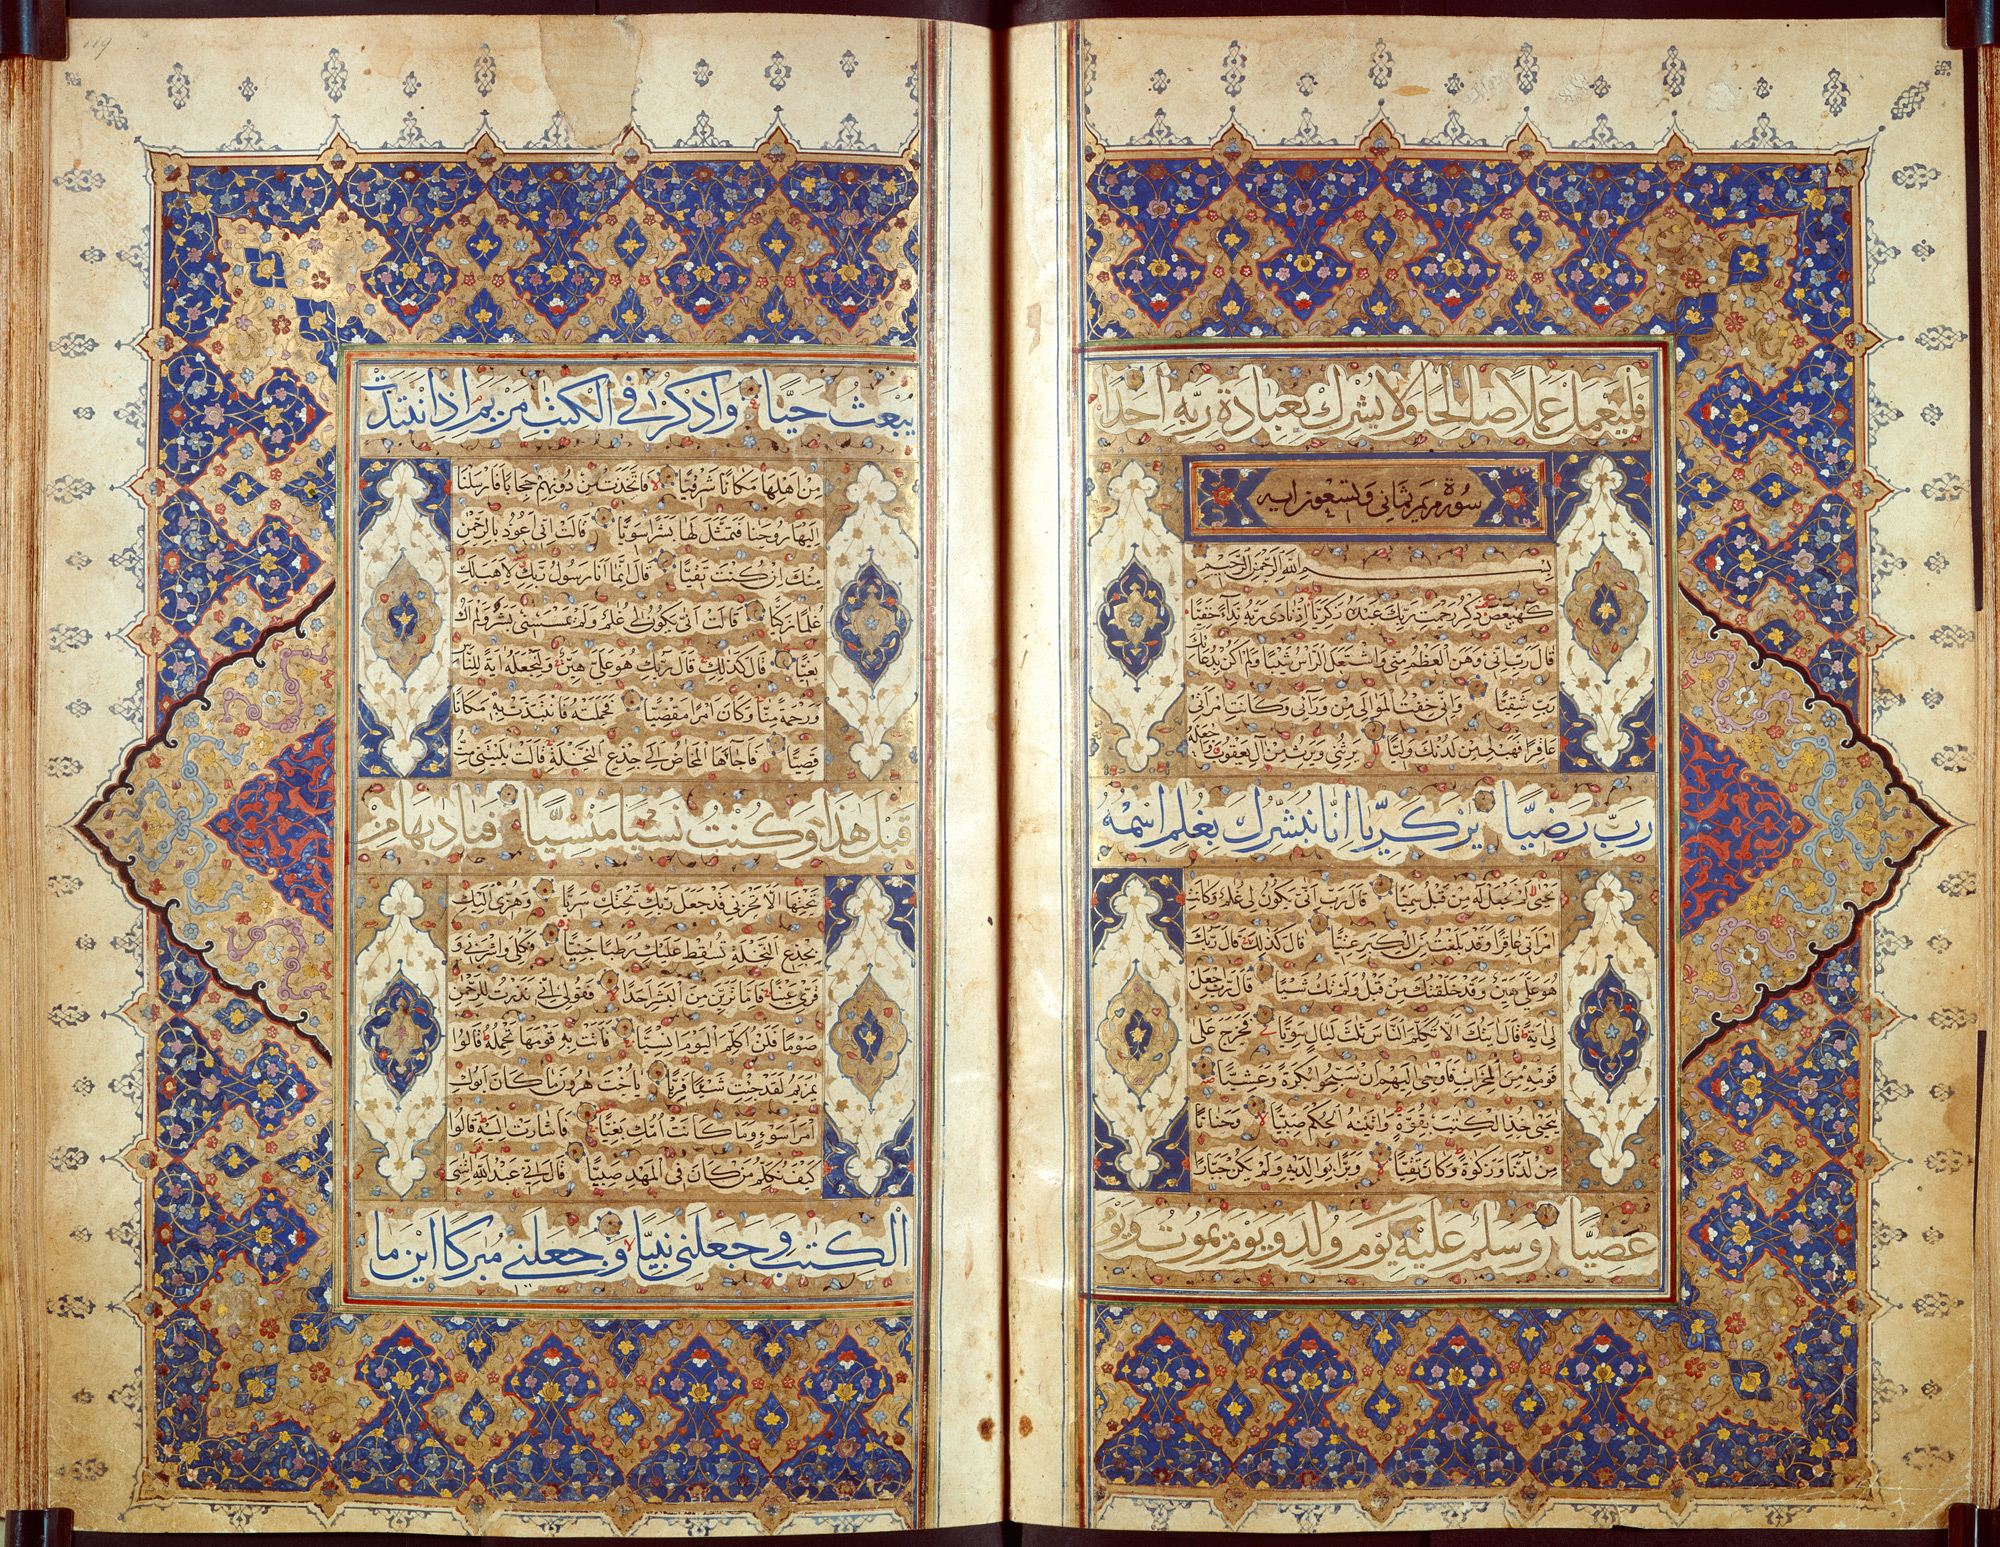 Indian Qur'an from the 16th century